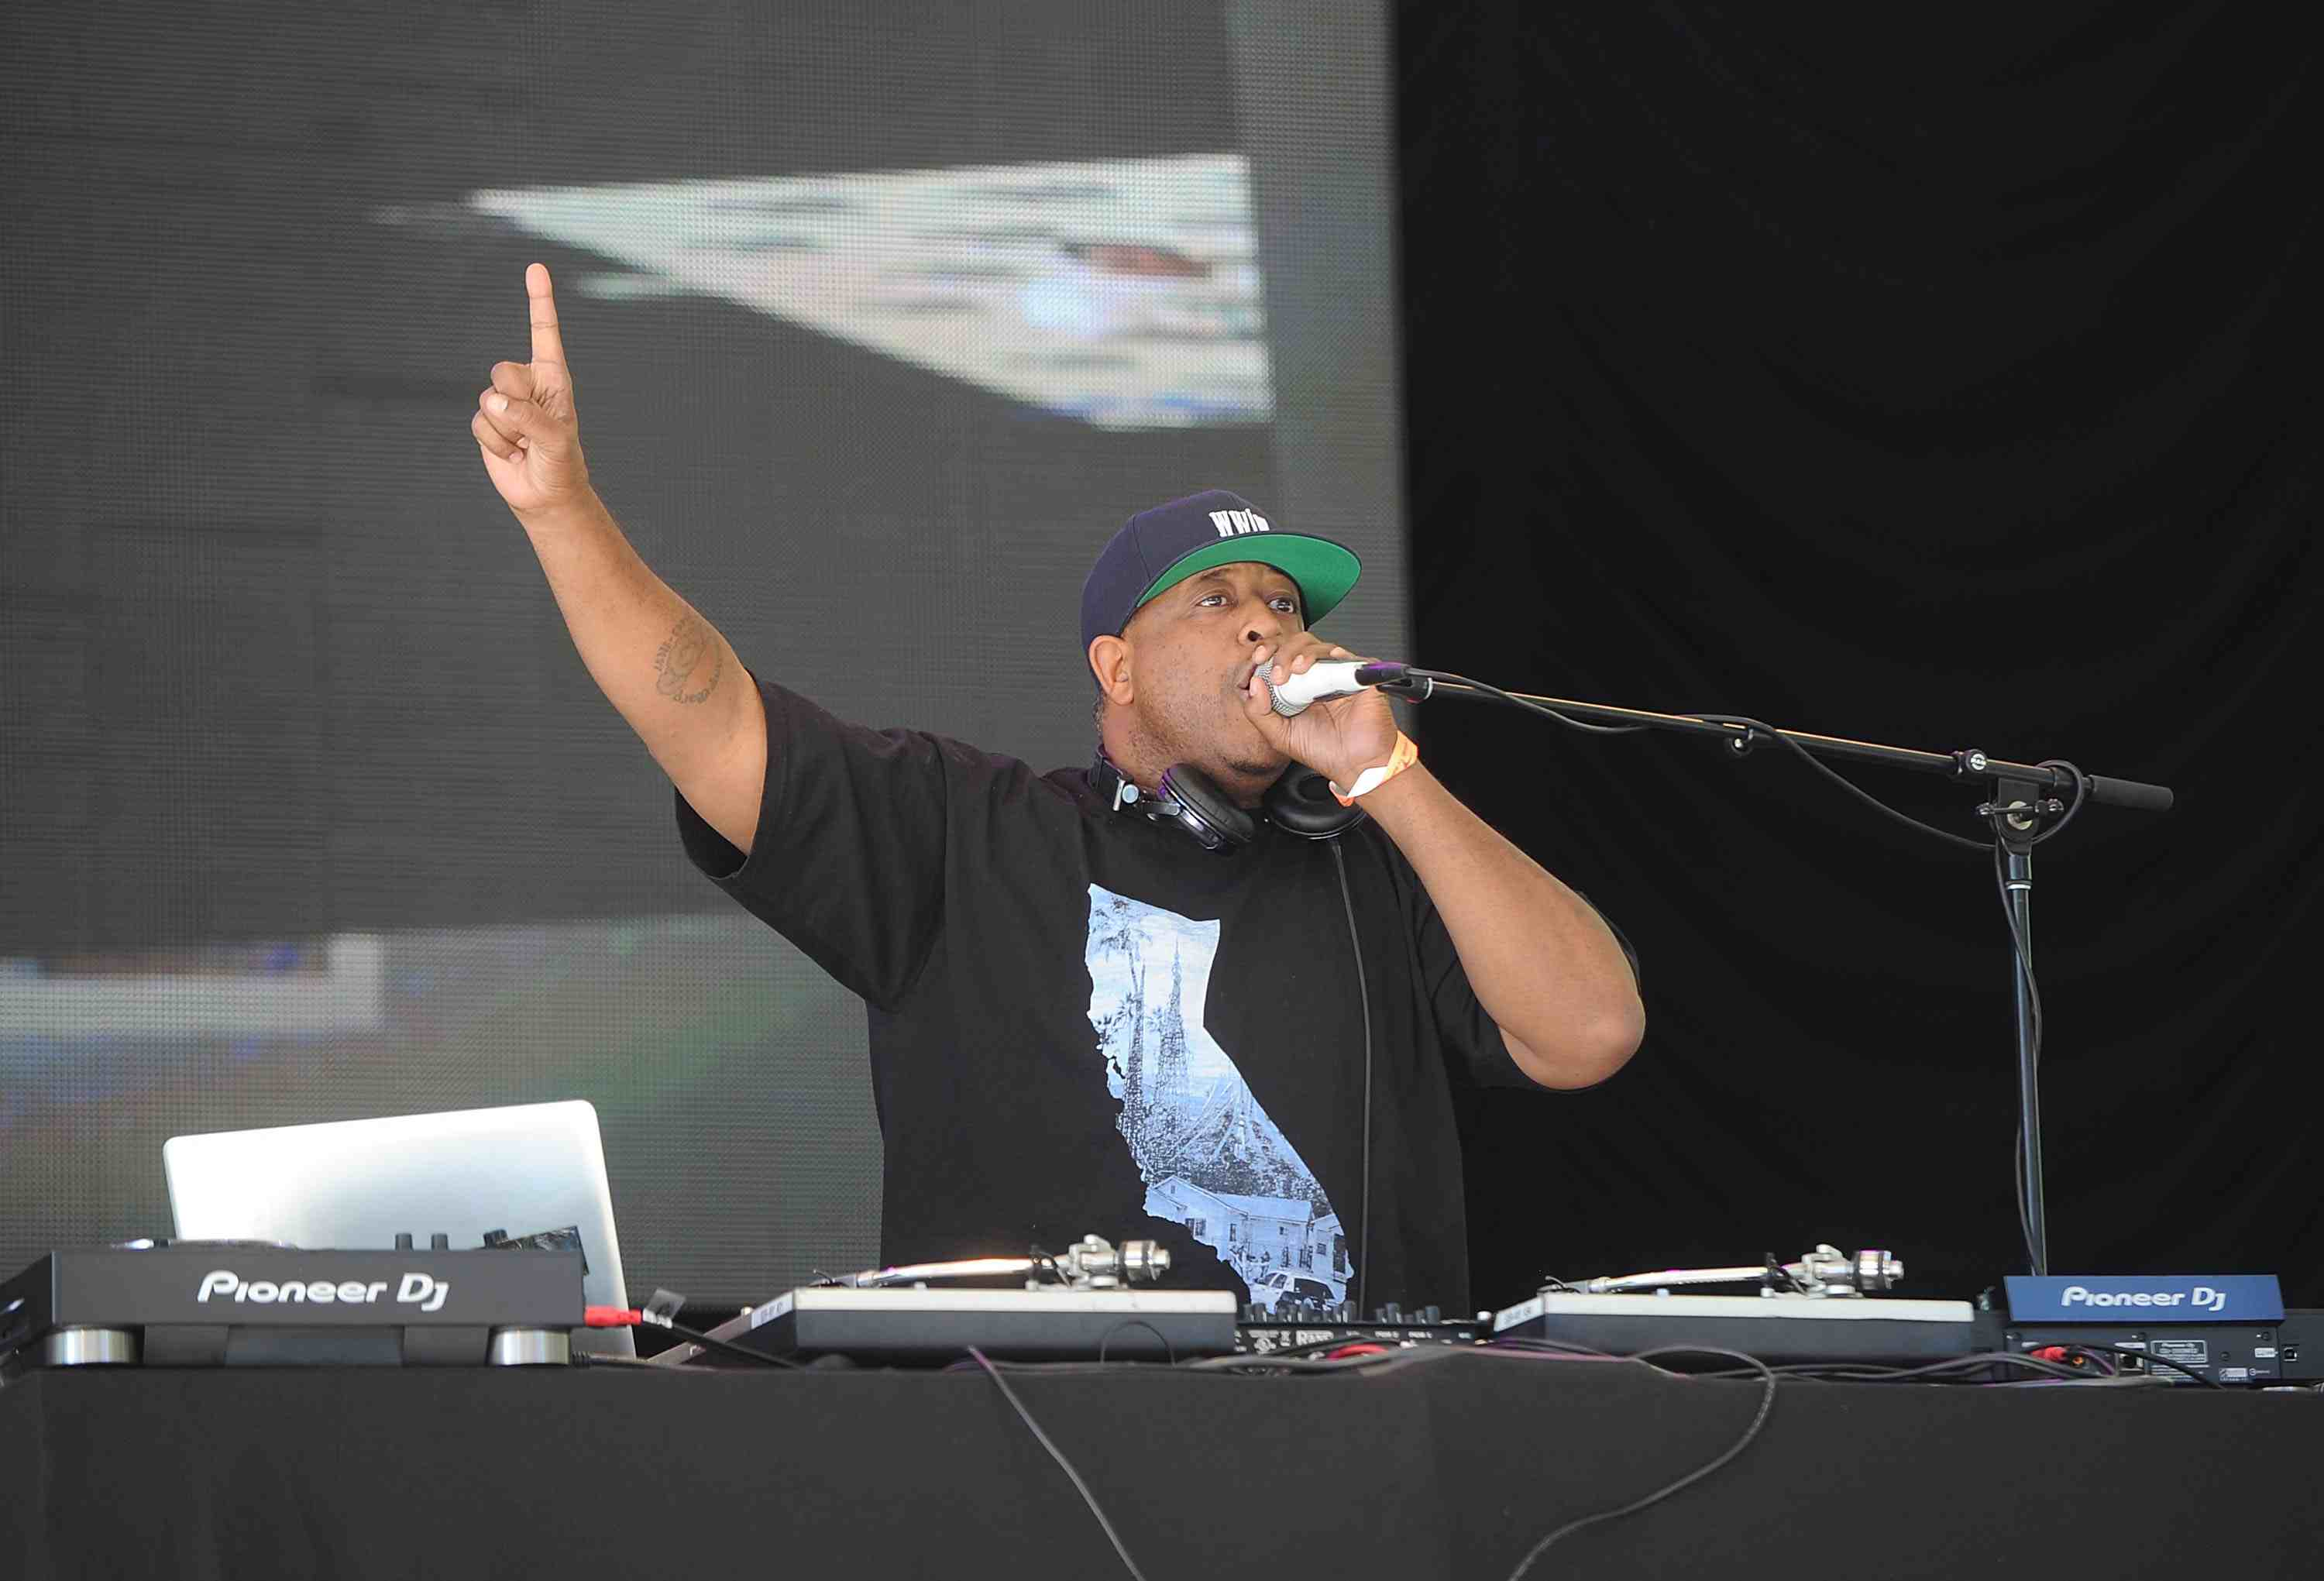 City Parks Foundation SummerStage Presents Rock Steady Crew 40th Anniversary